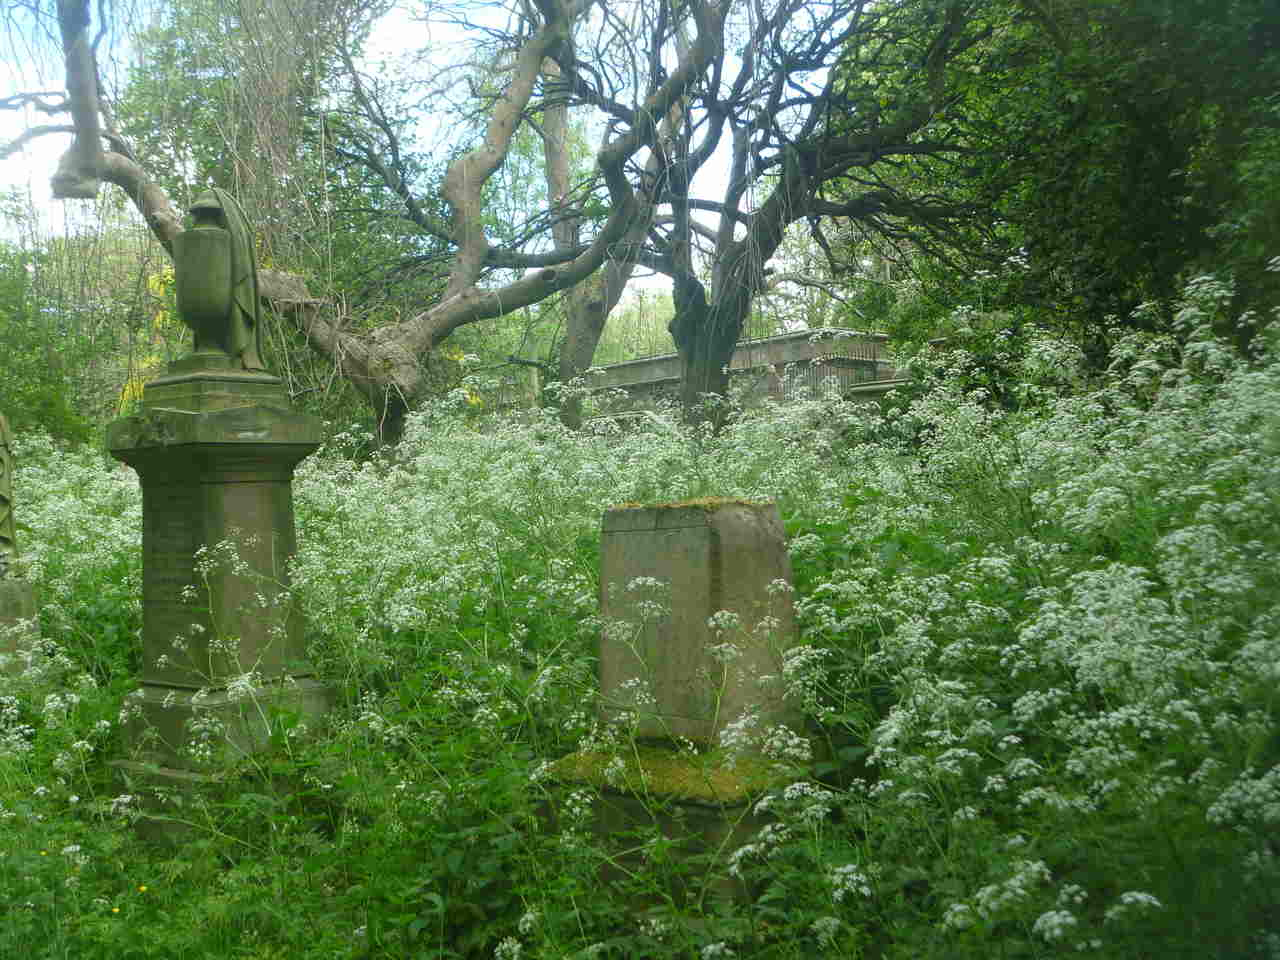 Clouds of Cow Parsley in the cemetery